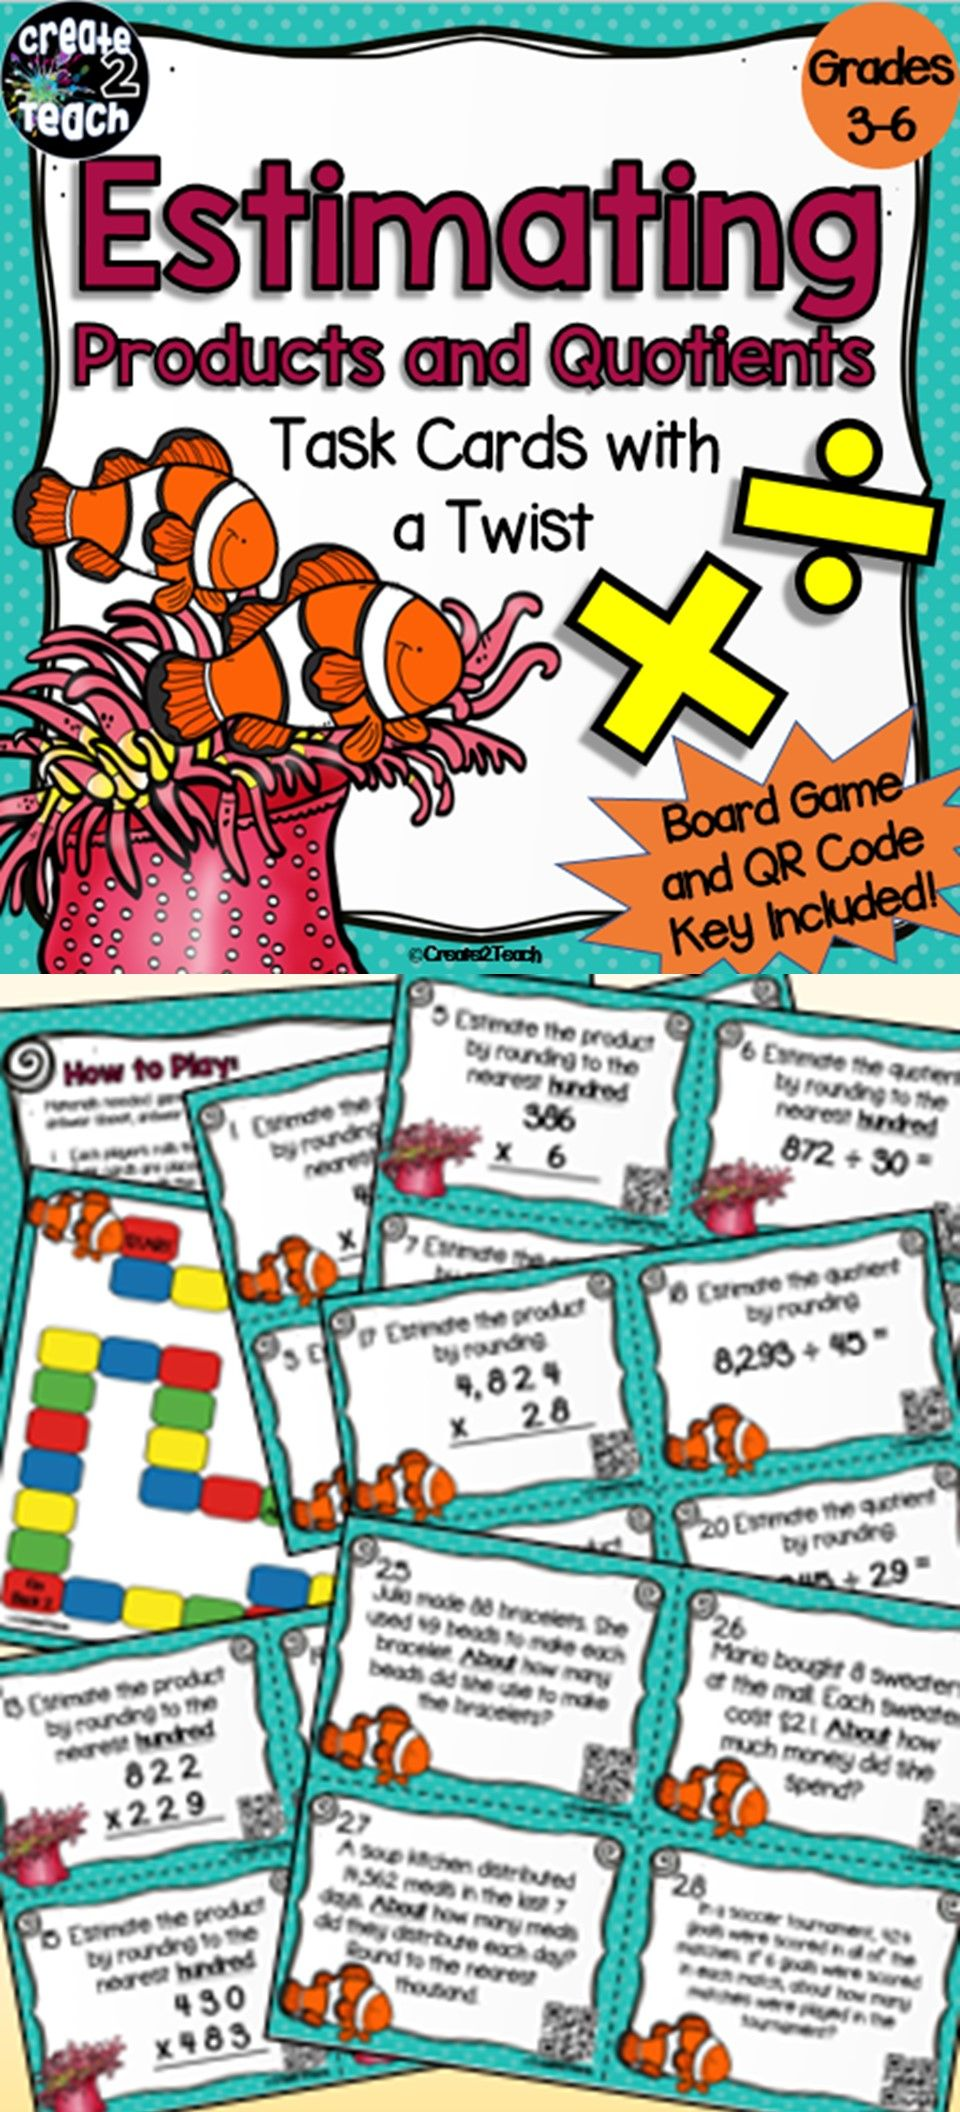 Estimating Products and Quotients Task Card Board Game | Game boards ...